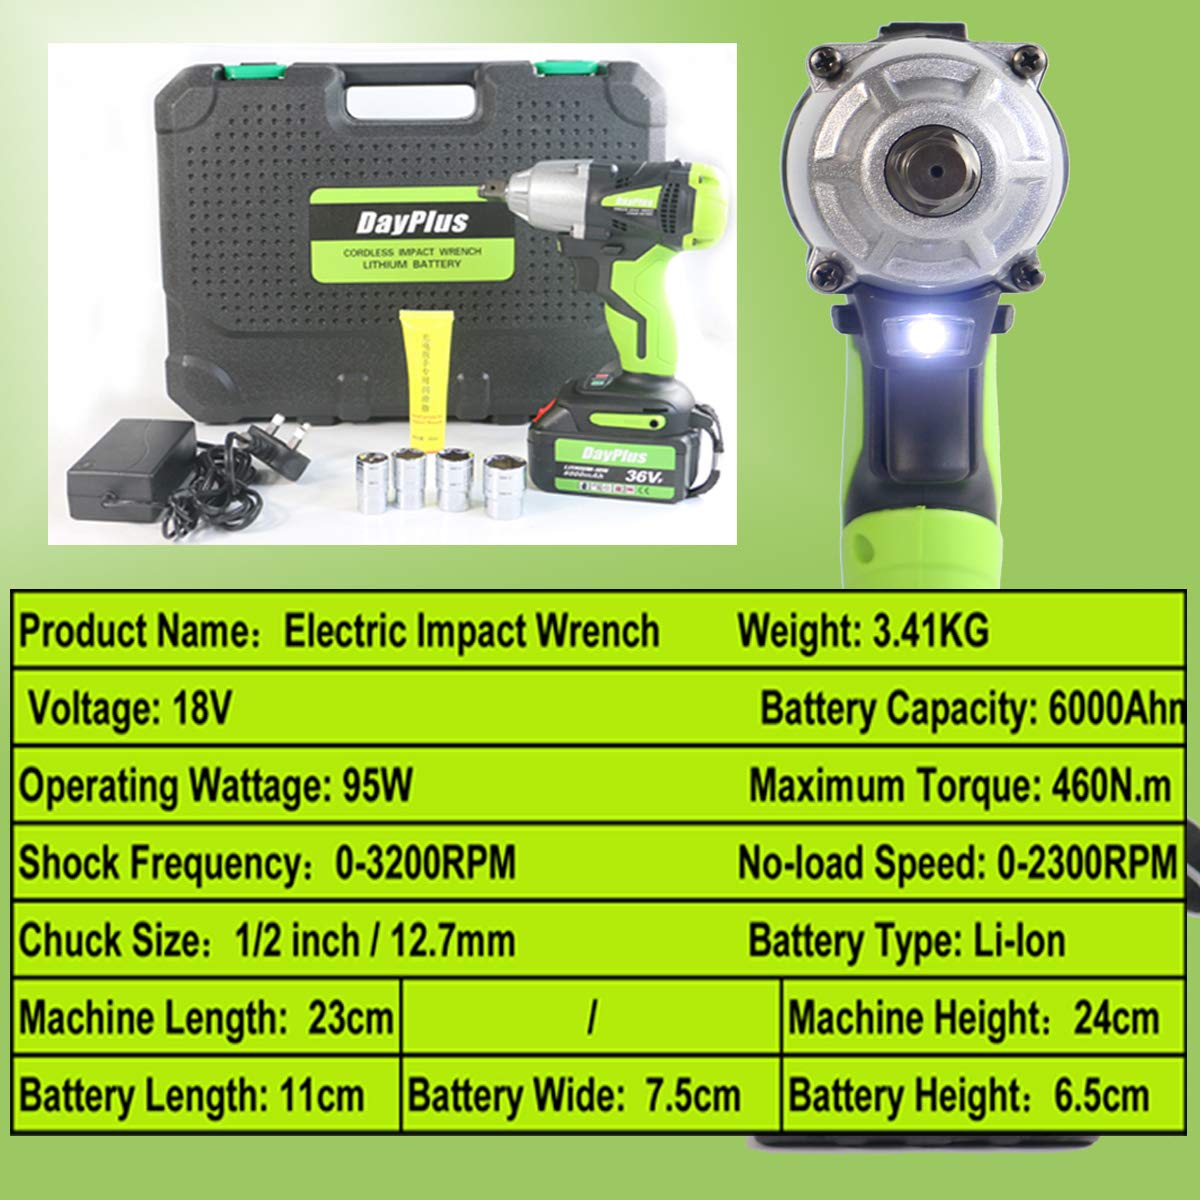 0.8-10mm Chuck Variable Speed Autofu 21V Impact Cordless Drill Set with 1500Ahm Lithium Ion Battery 1.5 Hr Fast Charger 29pcs Accessories